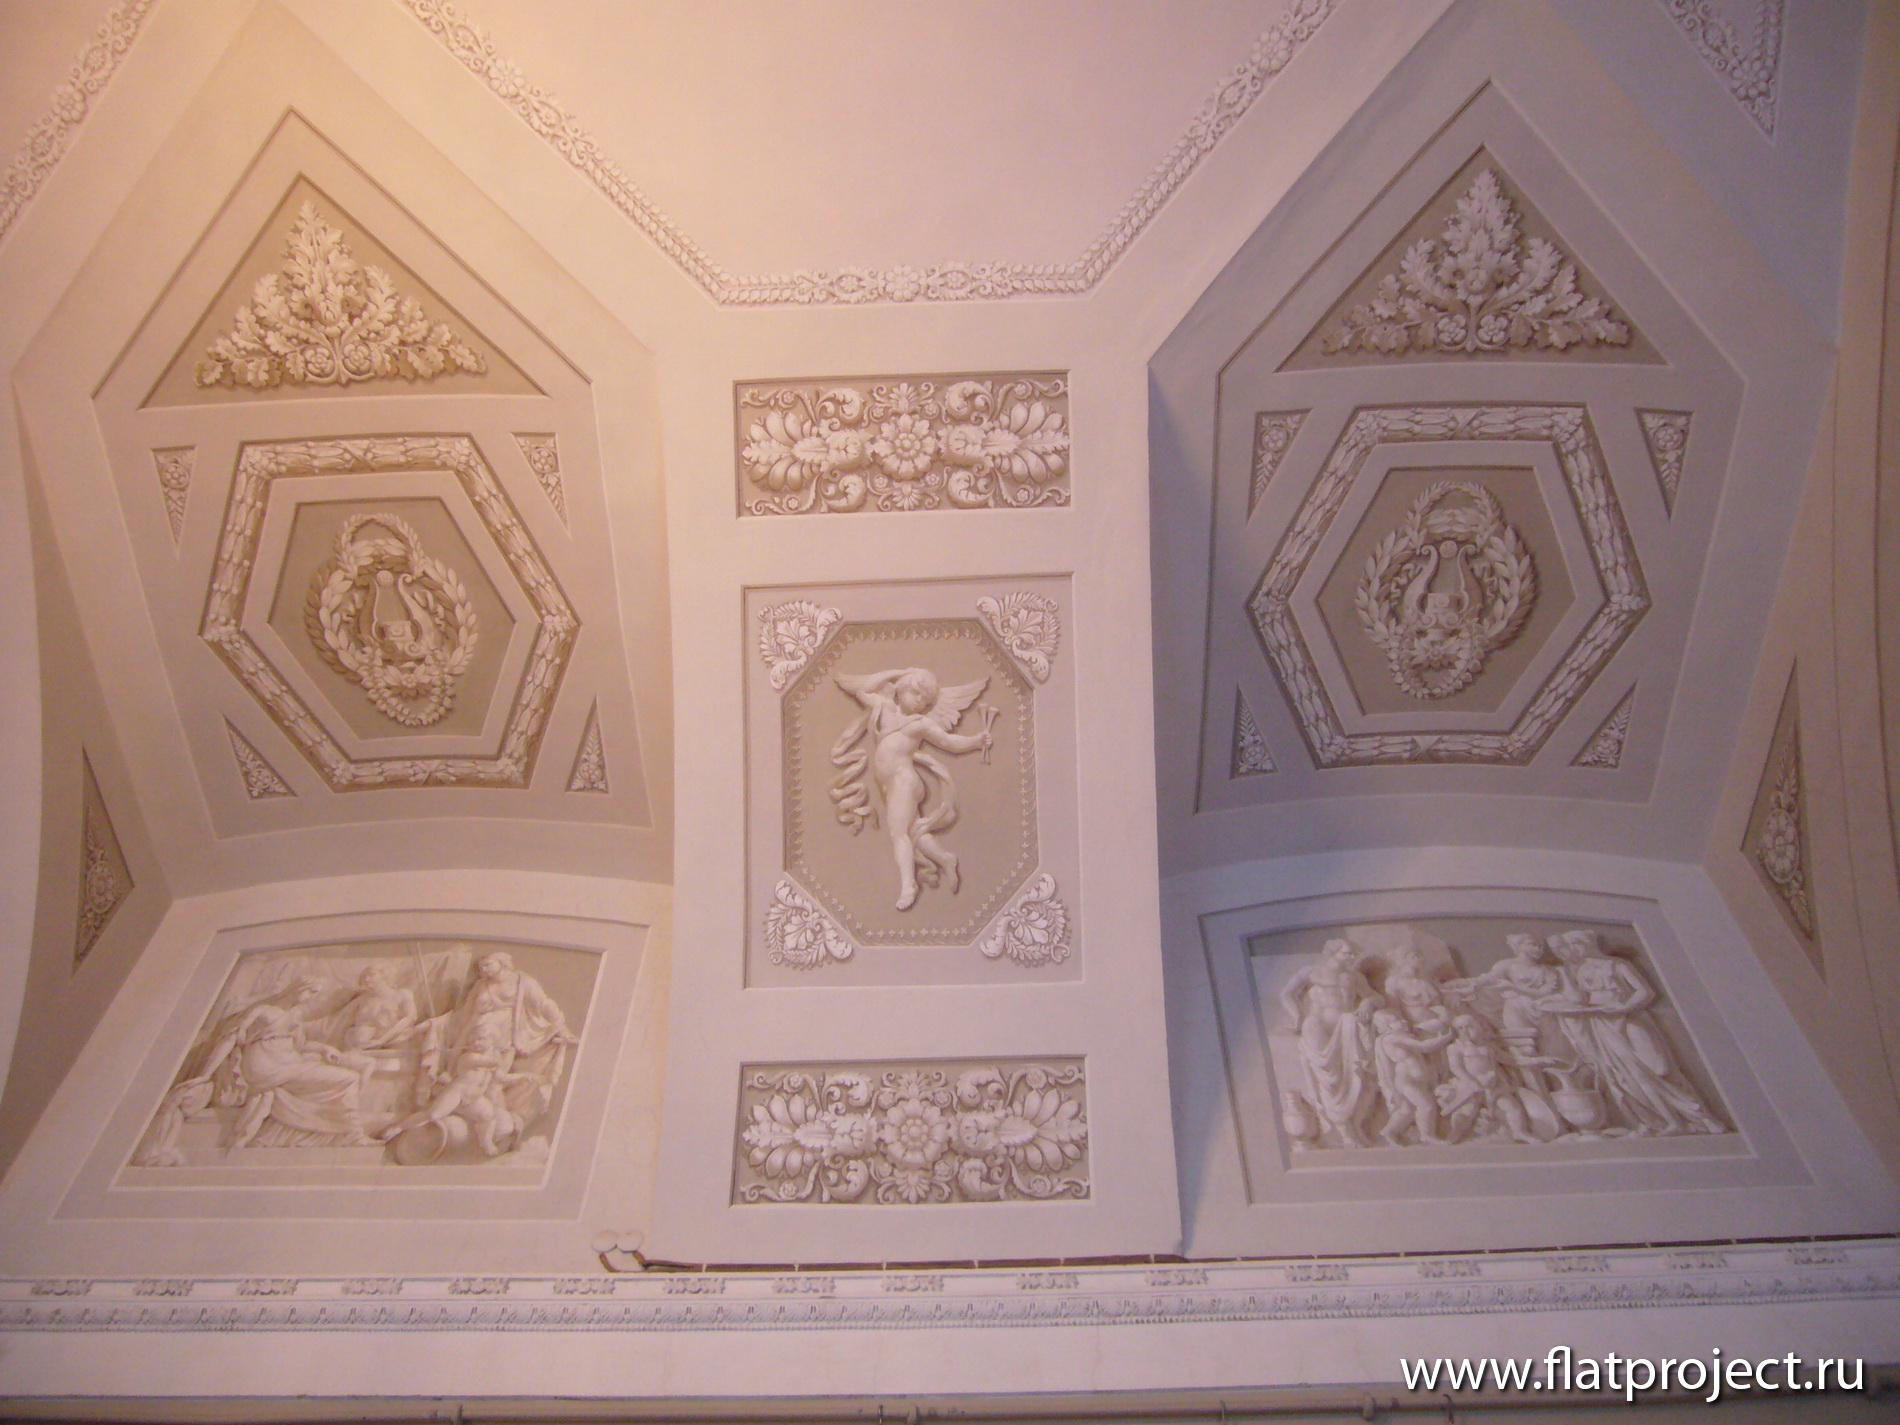 The State Russian museum interiors – photo 30